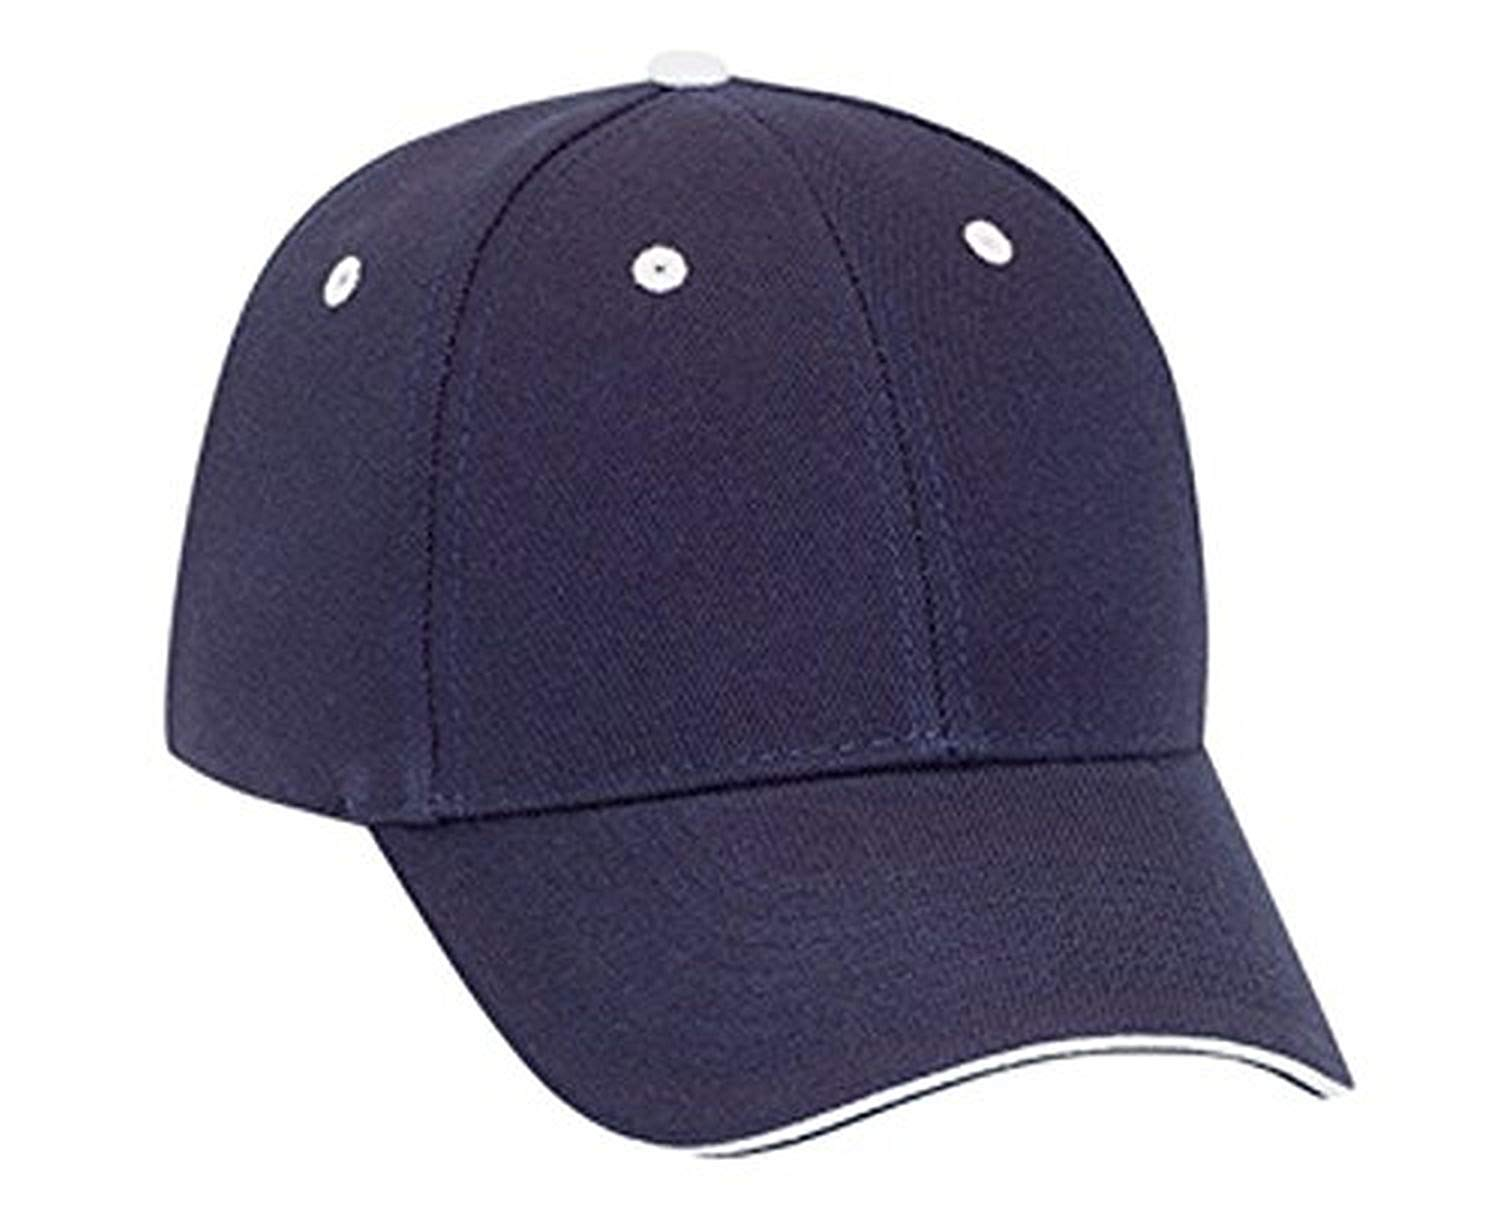 Hats & Caps Shop Wool Blend Sandwich Visor Low Profile Pro Style Caps - By TheTargetBuys